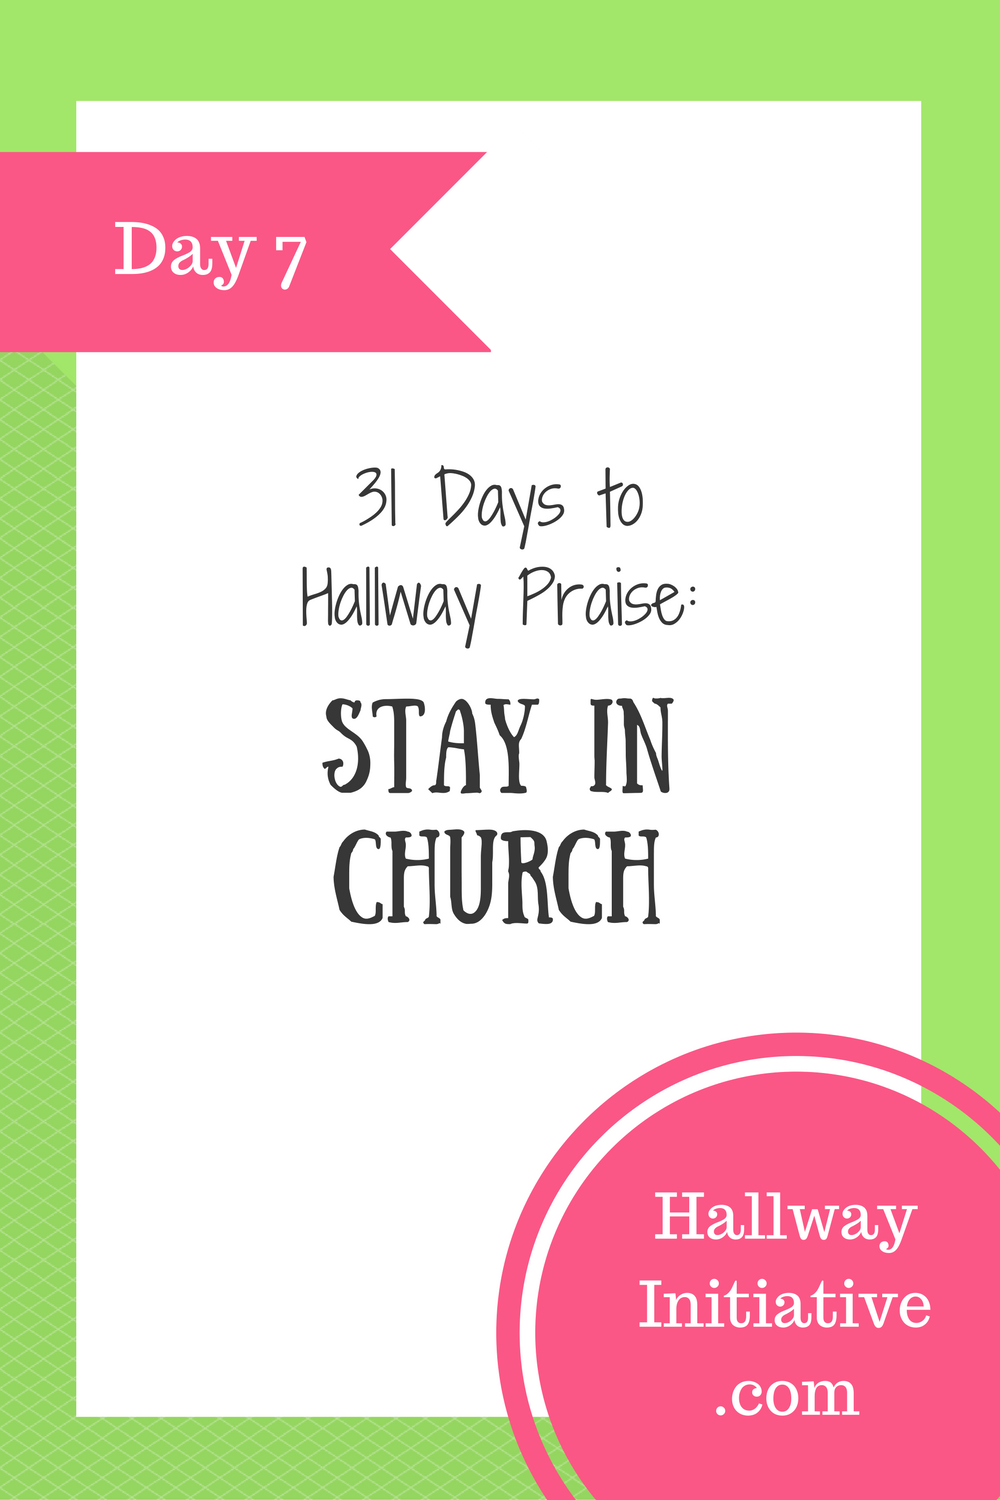 Day 7: stay in church